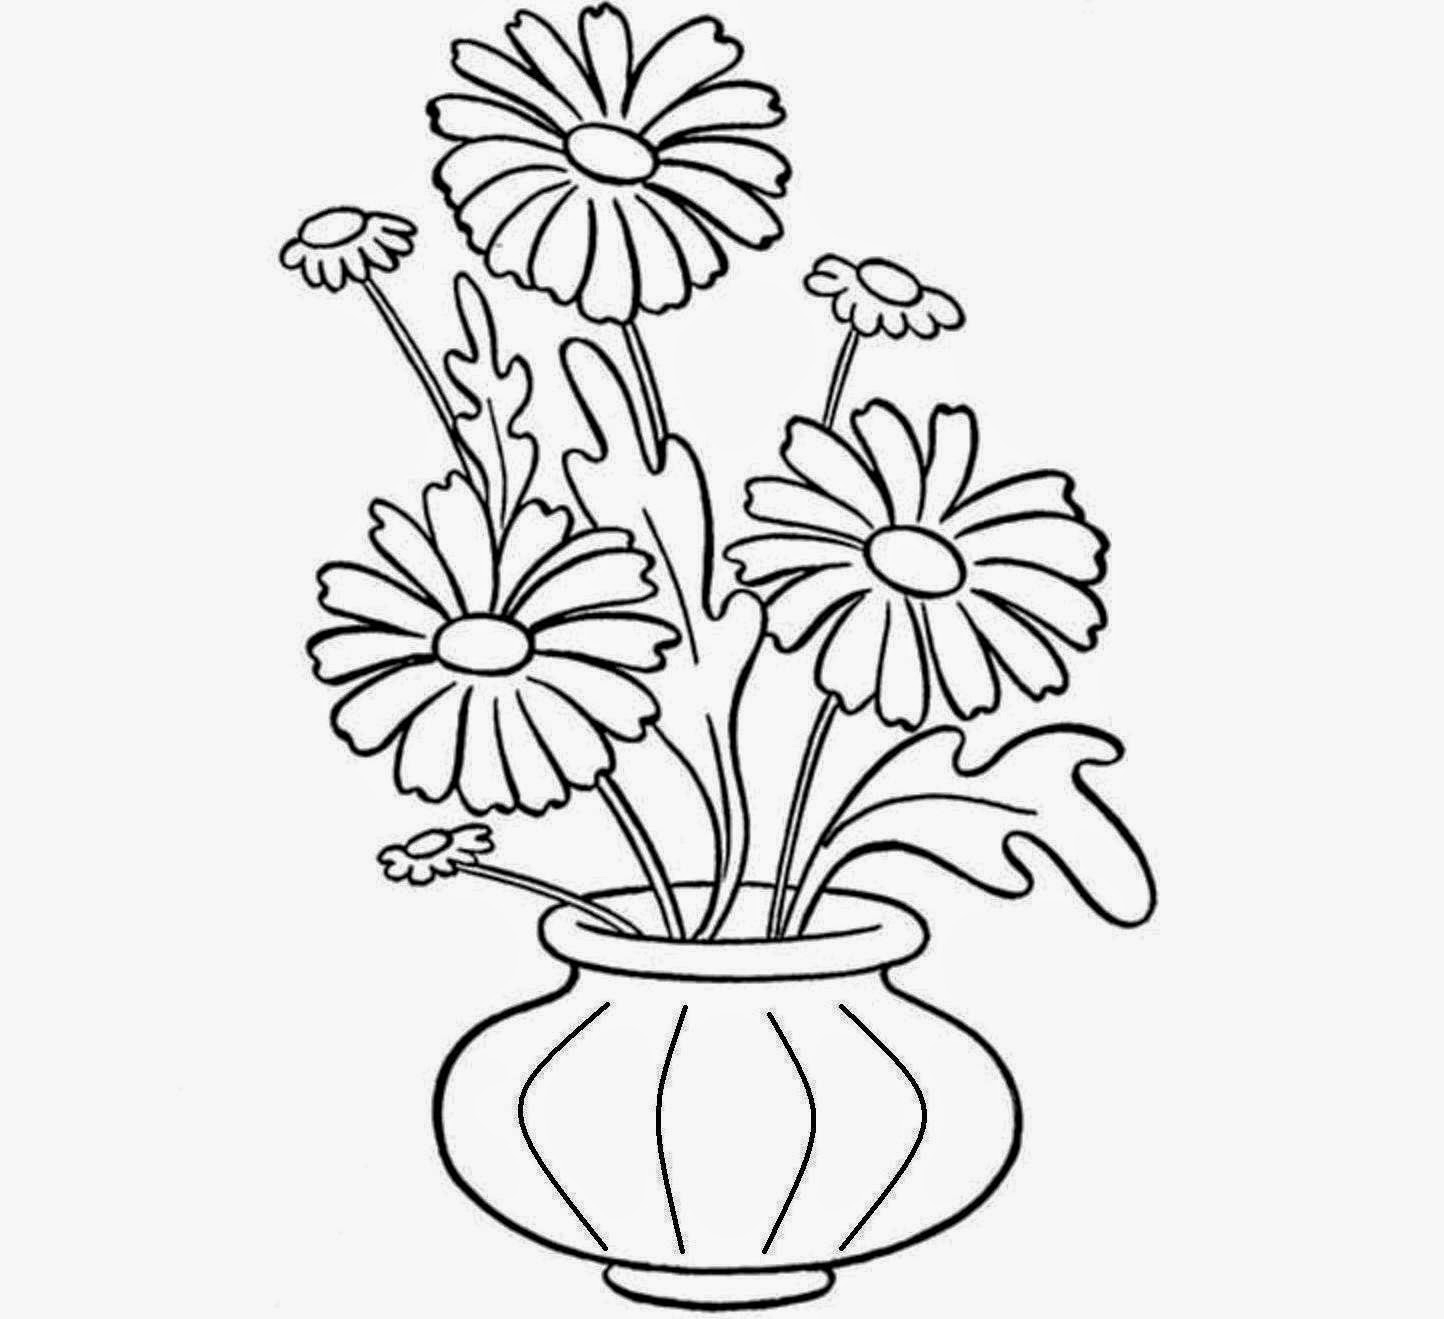 Pot Plant Drawing at GetDrawings.com | Free for personal use Pot ...